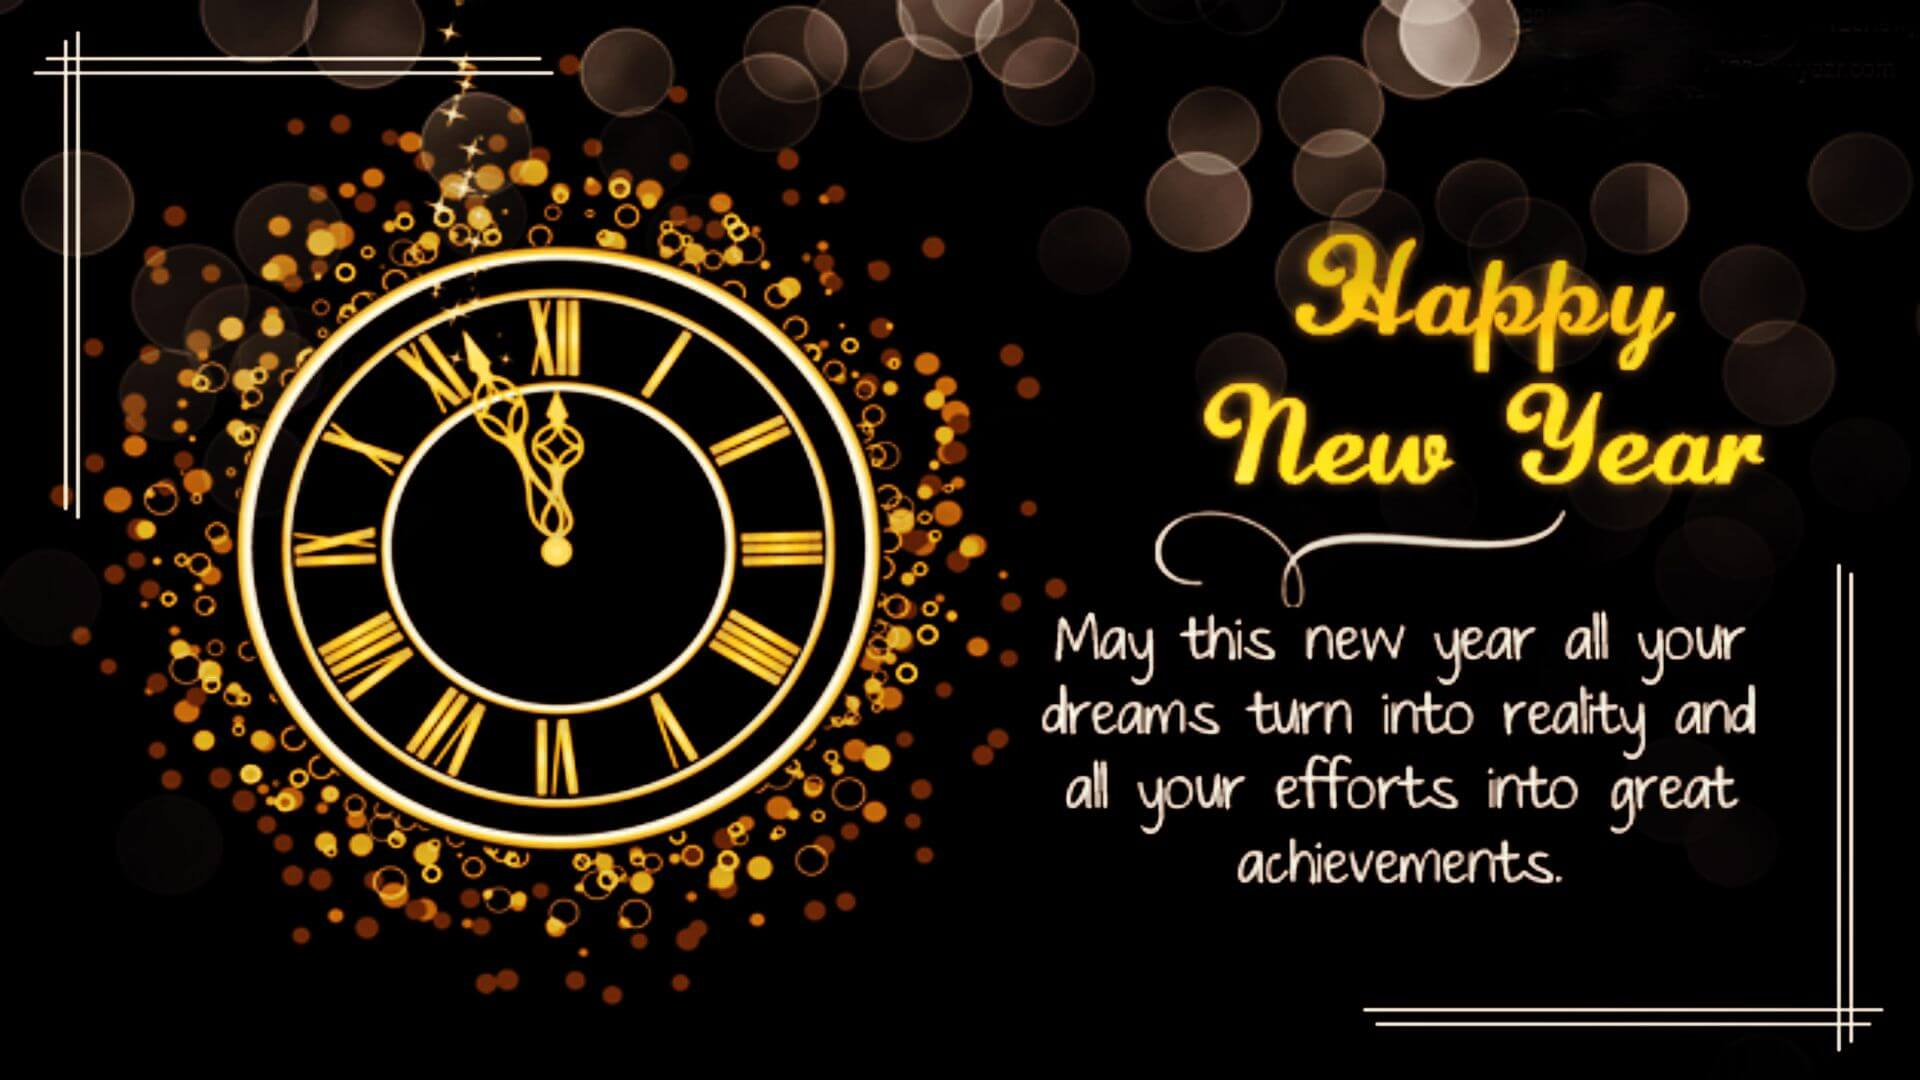 Happy new year 2018 quotes wishes greetings sms 2018 top 100 happy new year 2018 quotes kristyandbryce Choice Image